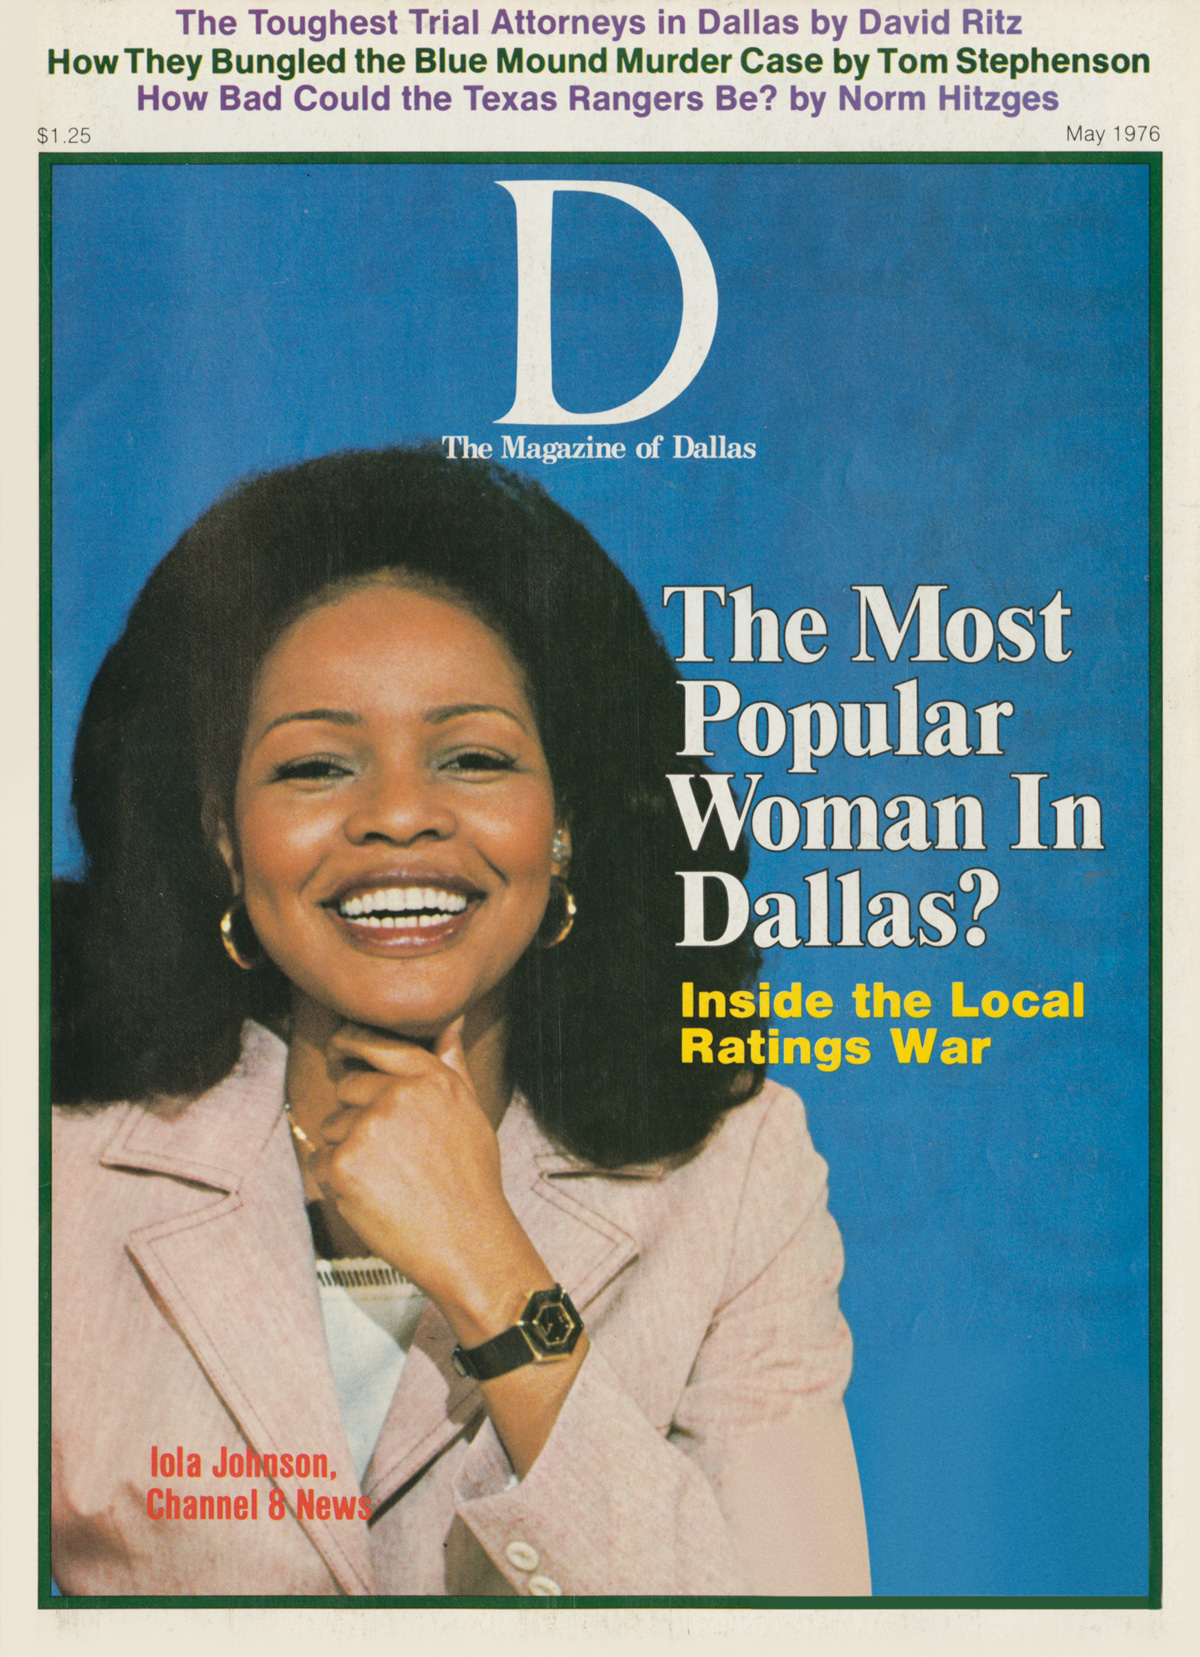 May 1976 cover